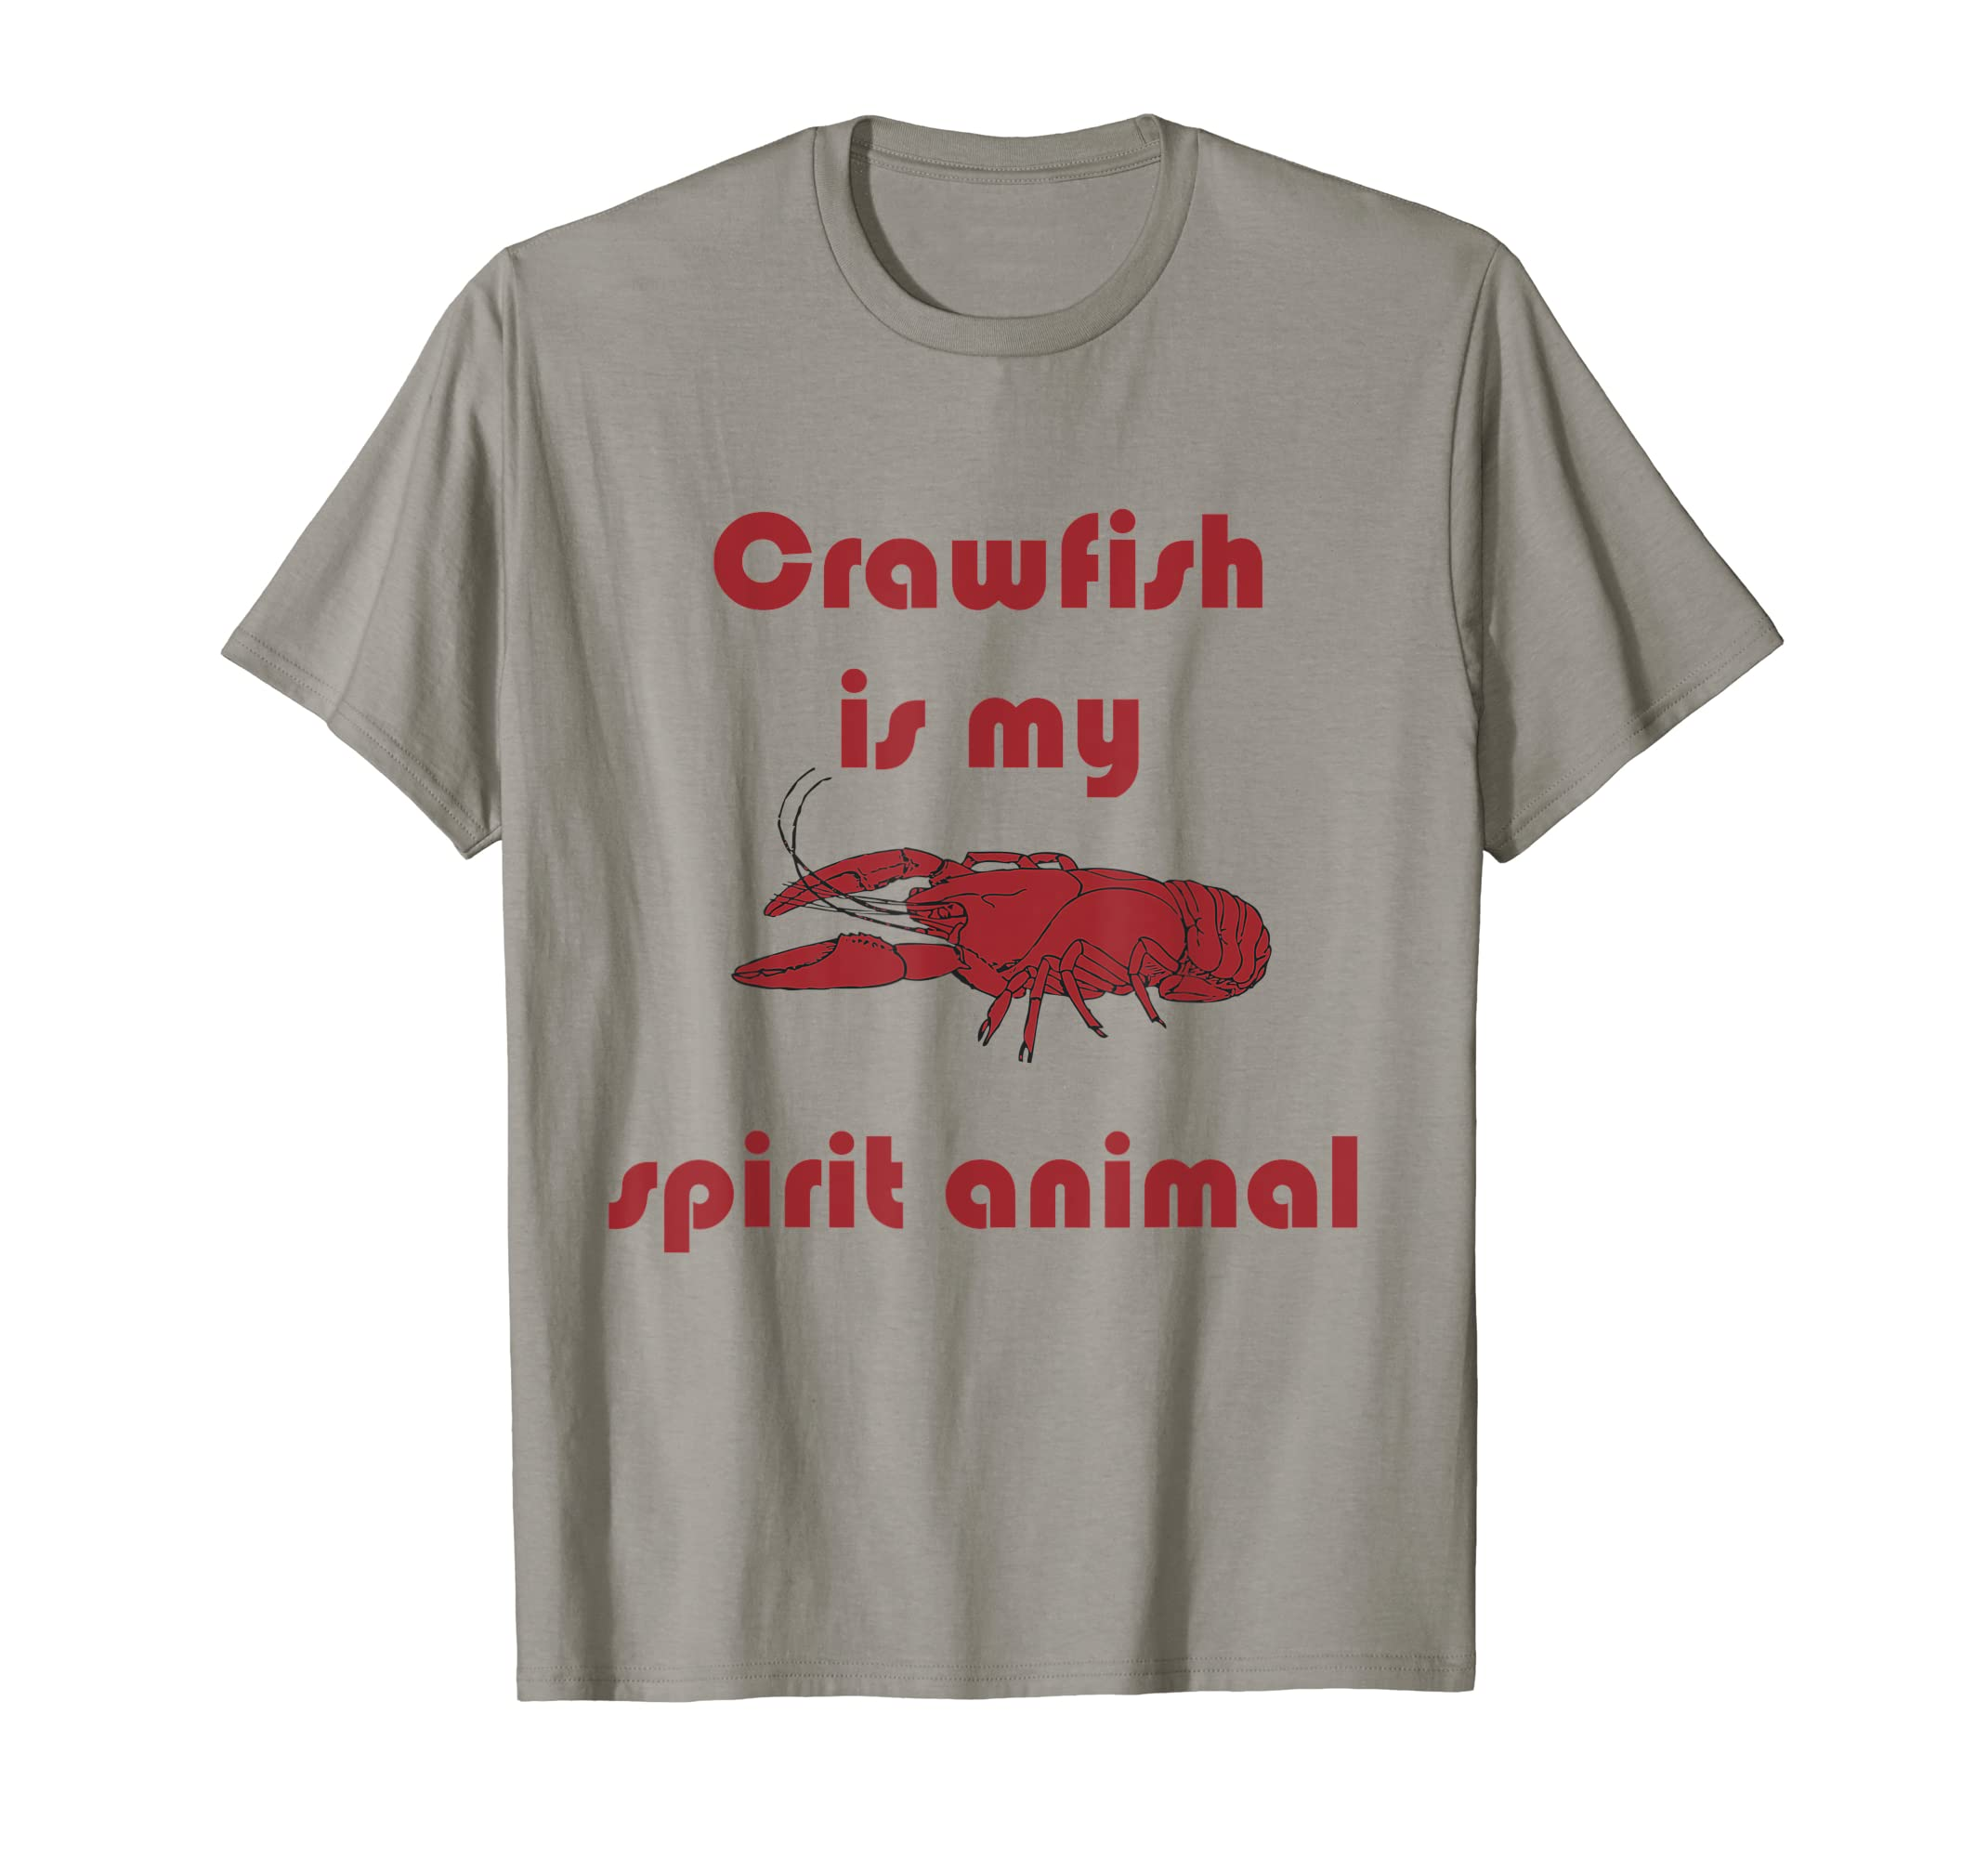 ba99f6f543 Amazon.com: Crawfish is My Spirit Animal Funny Louisiana Cajun Tee: Clothing